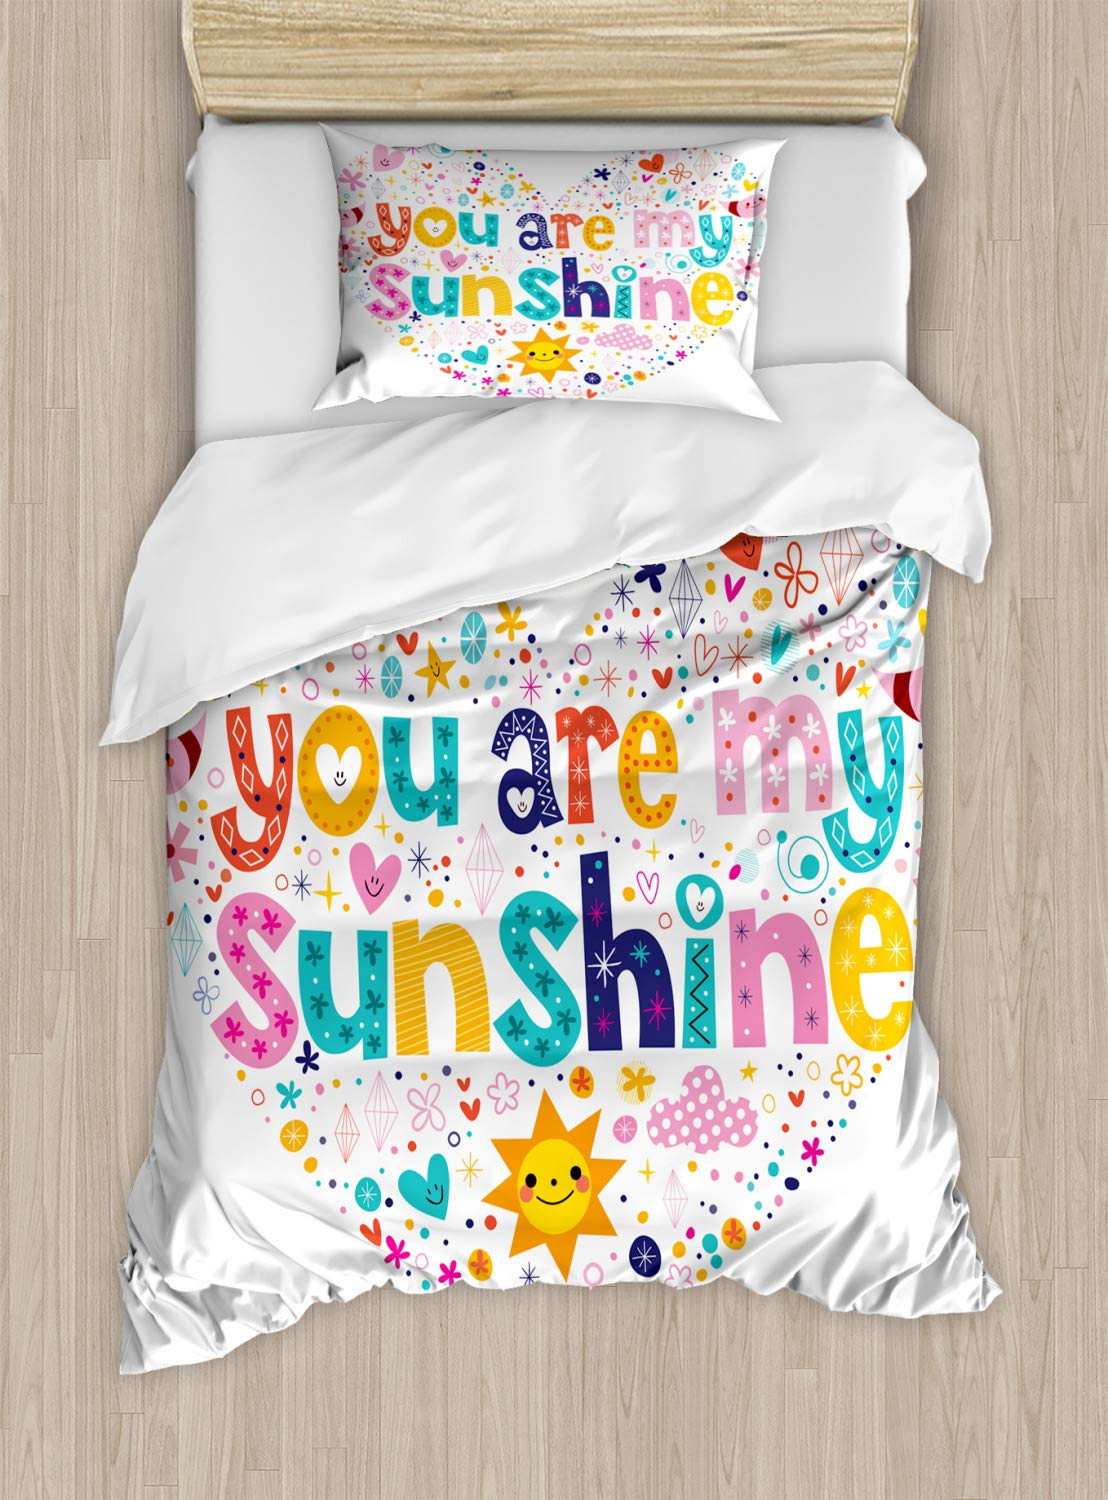 Ambesonne Saying Duvet Cover Set, Heart Shaped Sunshine Motivational Words with Stars Circle Sun Cloud Infant Design, Decorative 2 Piece Bedding Set with 1 Pillow Sham, Twin Size, White Pink